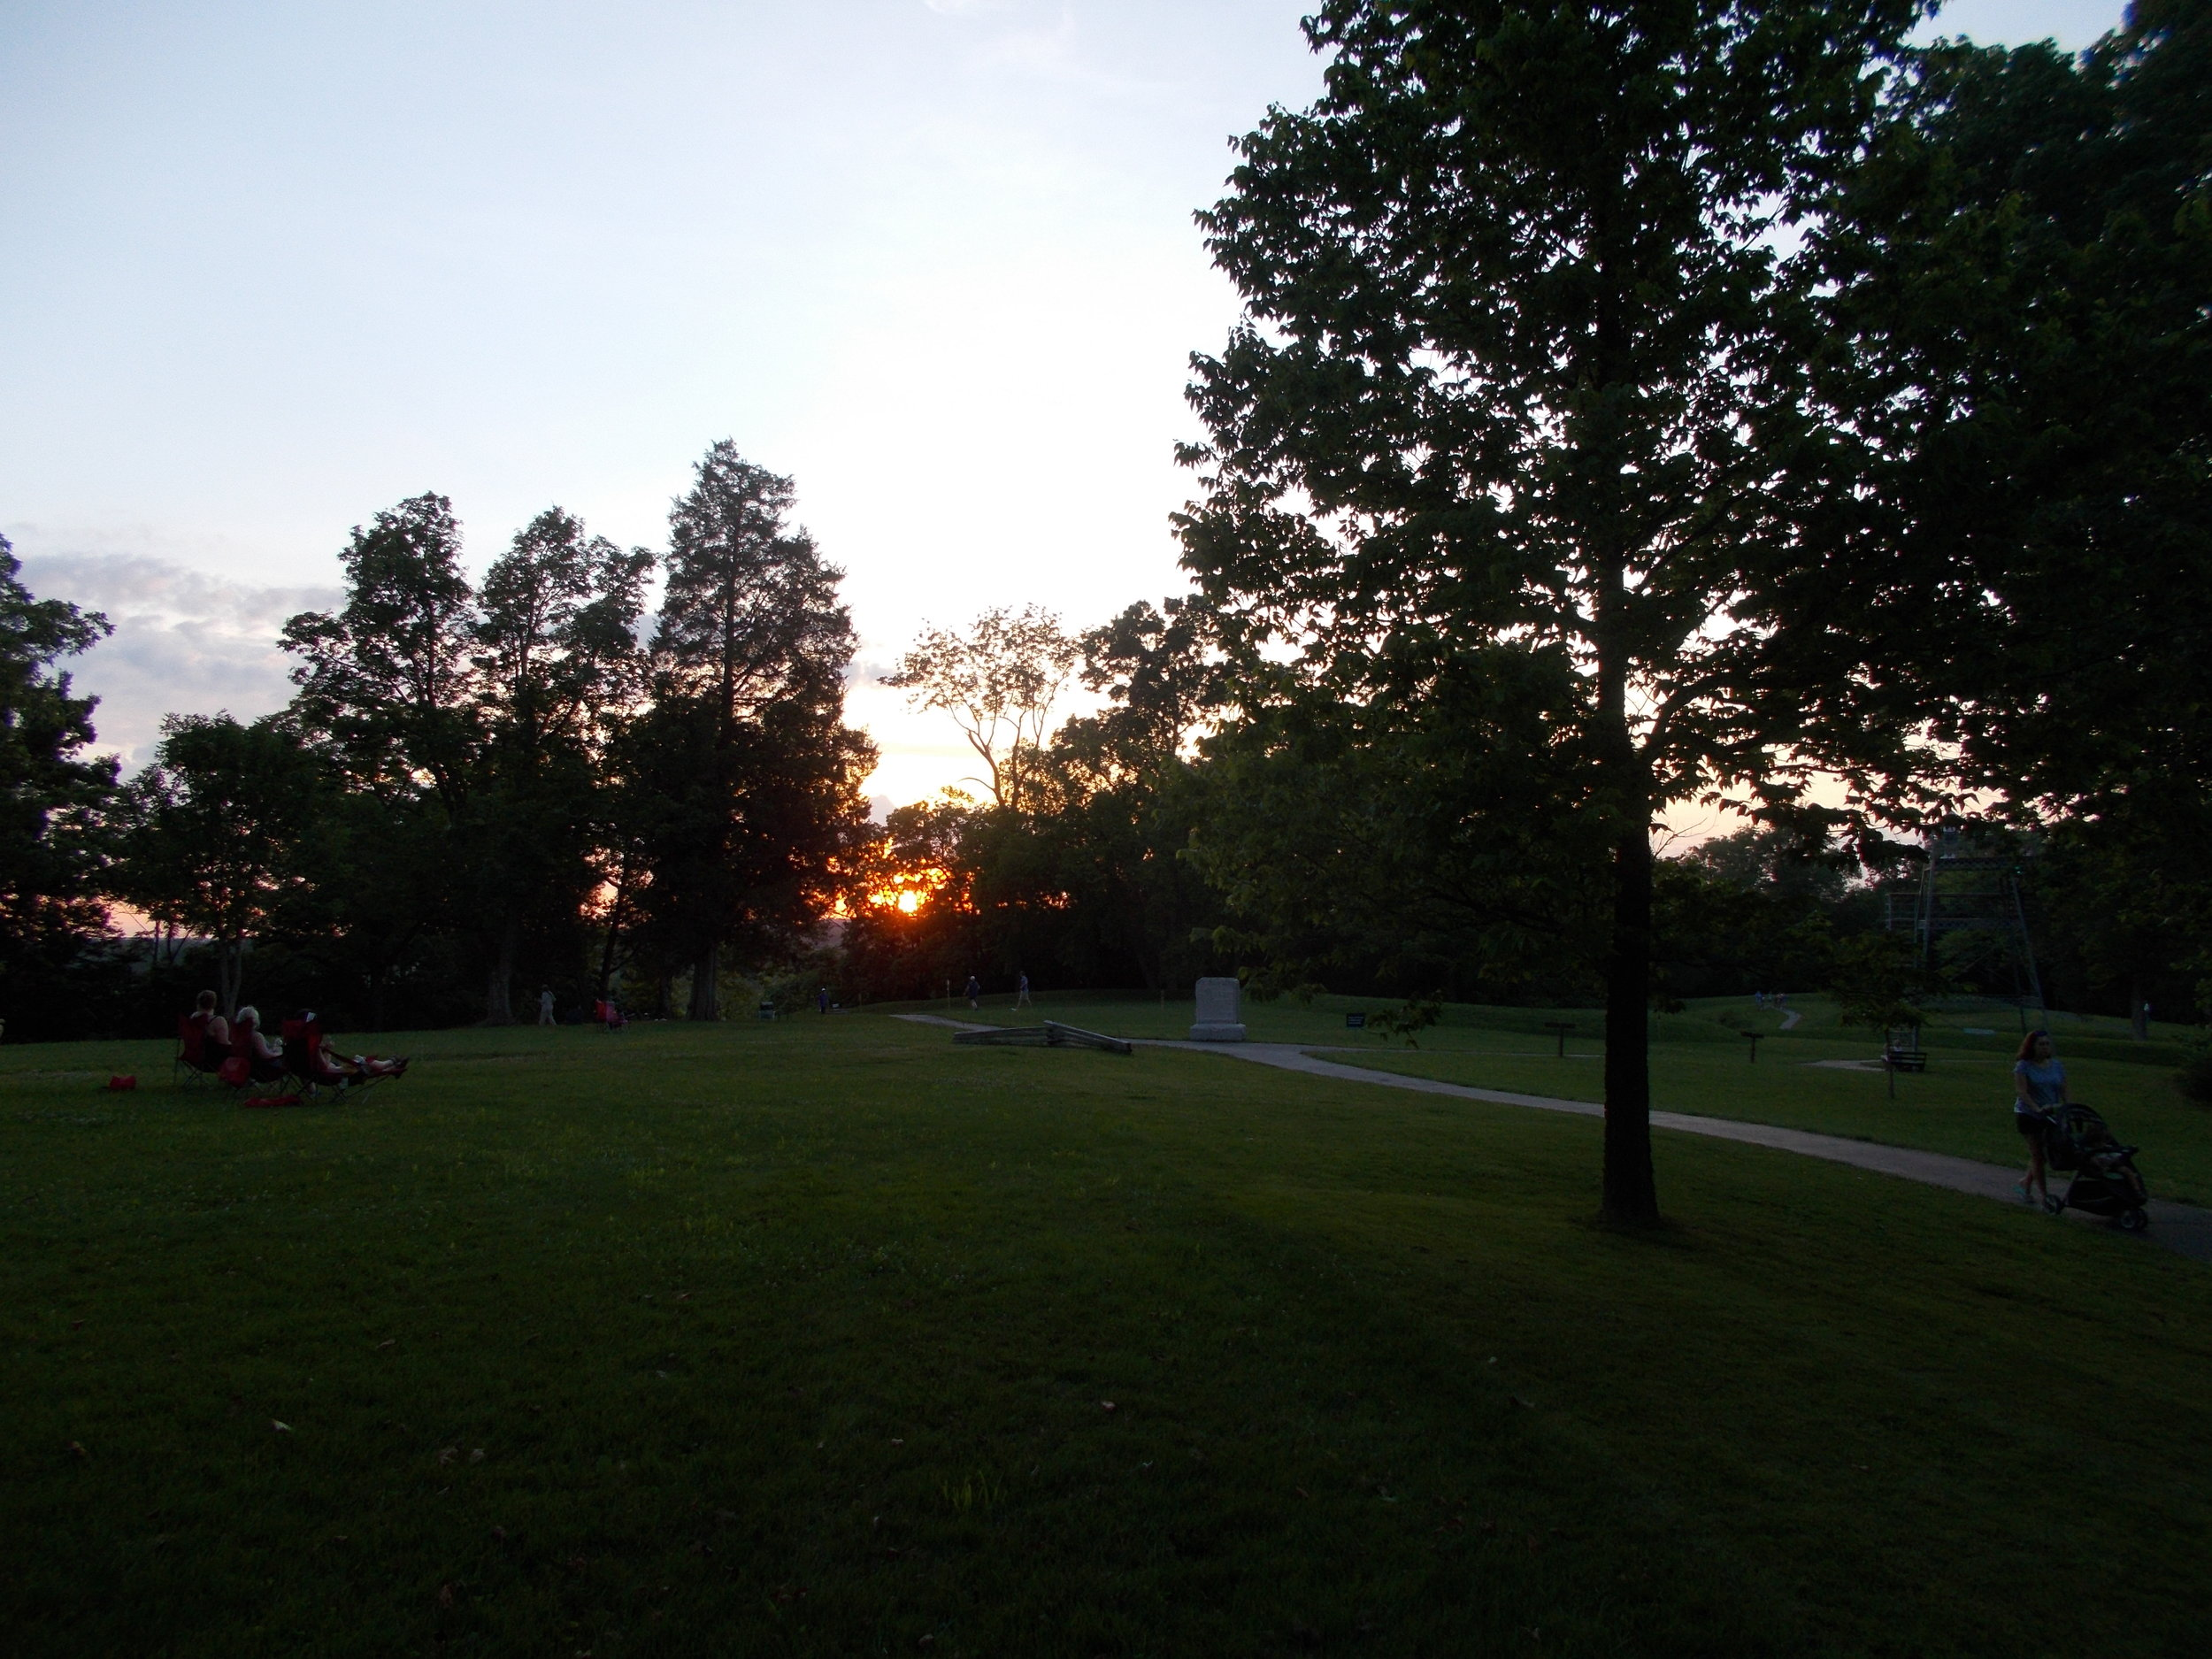 image: sunset at Great Serpent Mound, 06/17/2017; photo looking towards coiled tail and setting sun beyond -- body of Serpent stretches towards right of photo and curves back towards setting sun.